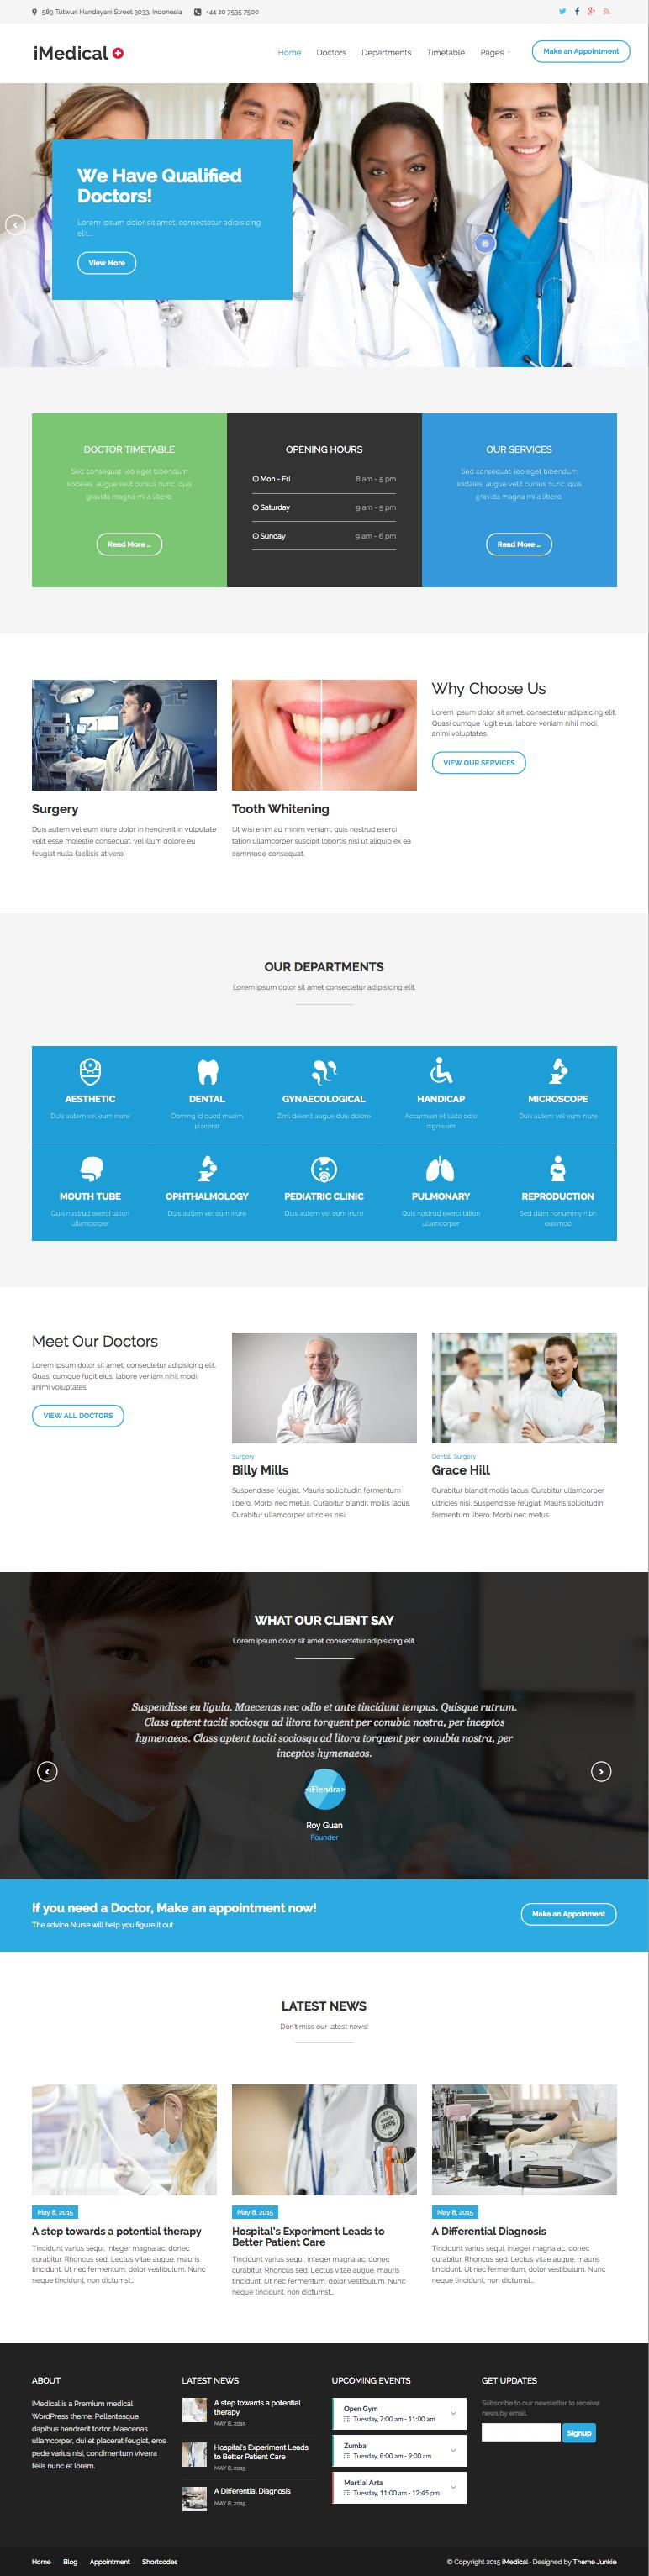 iMedical WordPress Theme for Dentists, Doctors & Health Care